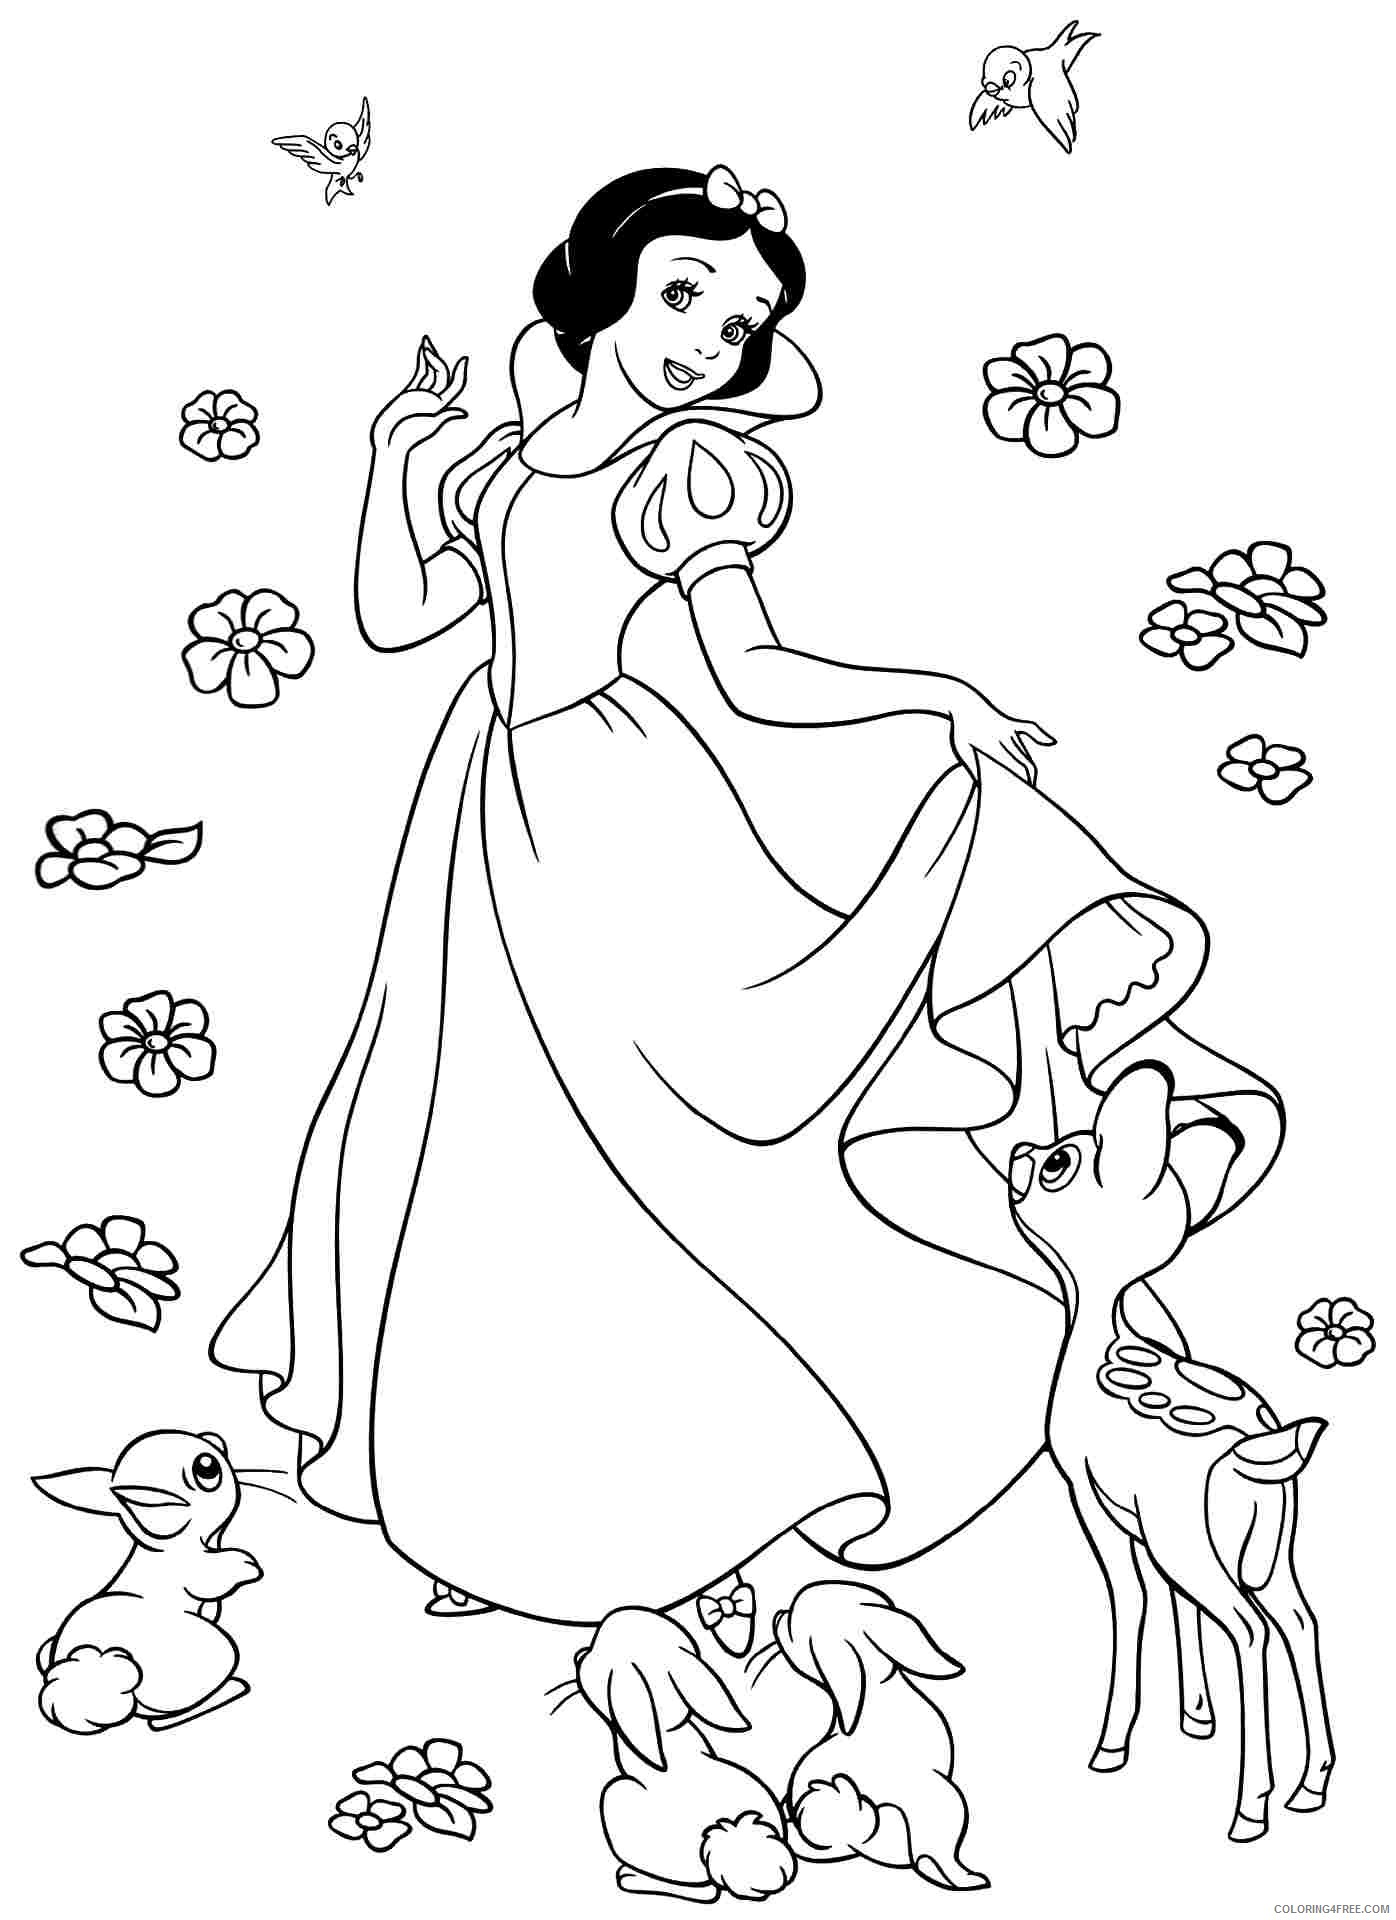 snow white coloring pages with forest animals Coloring4free